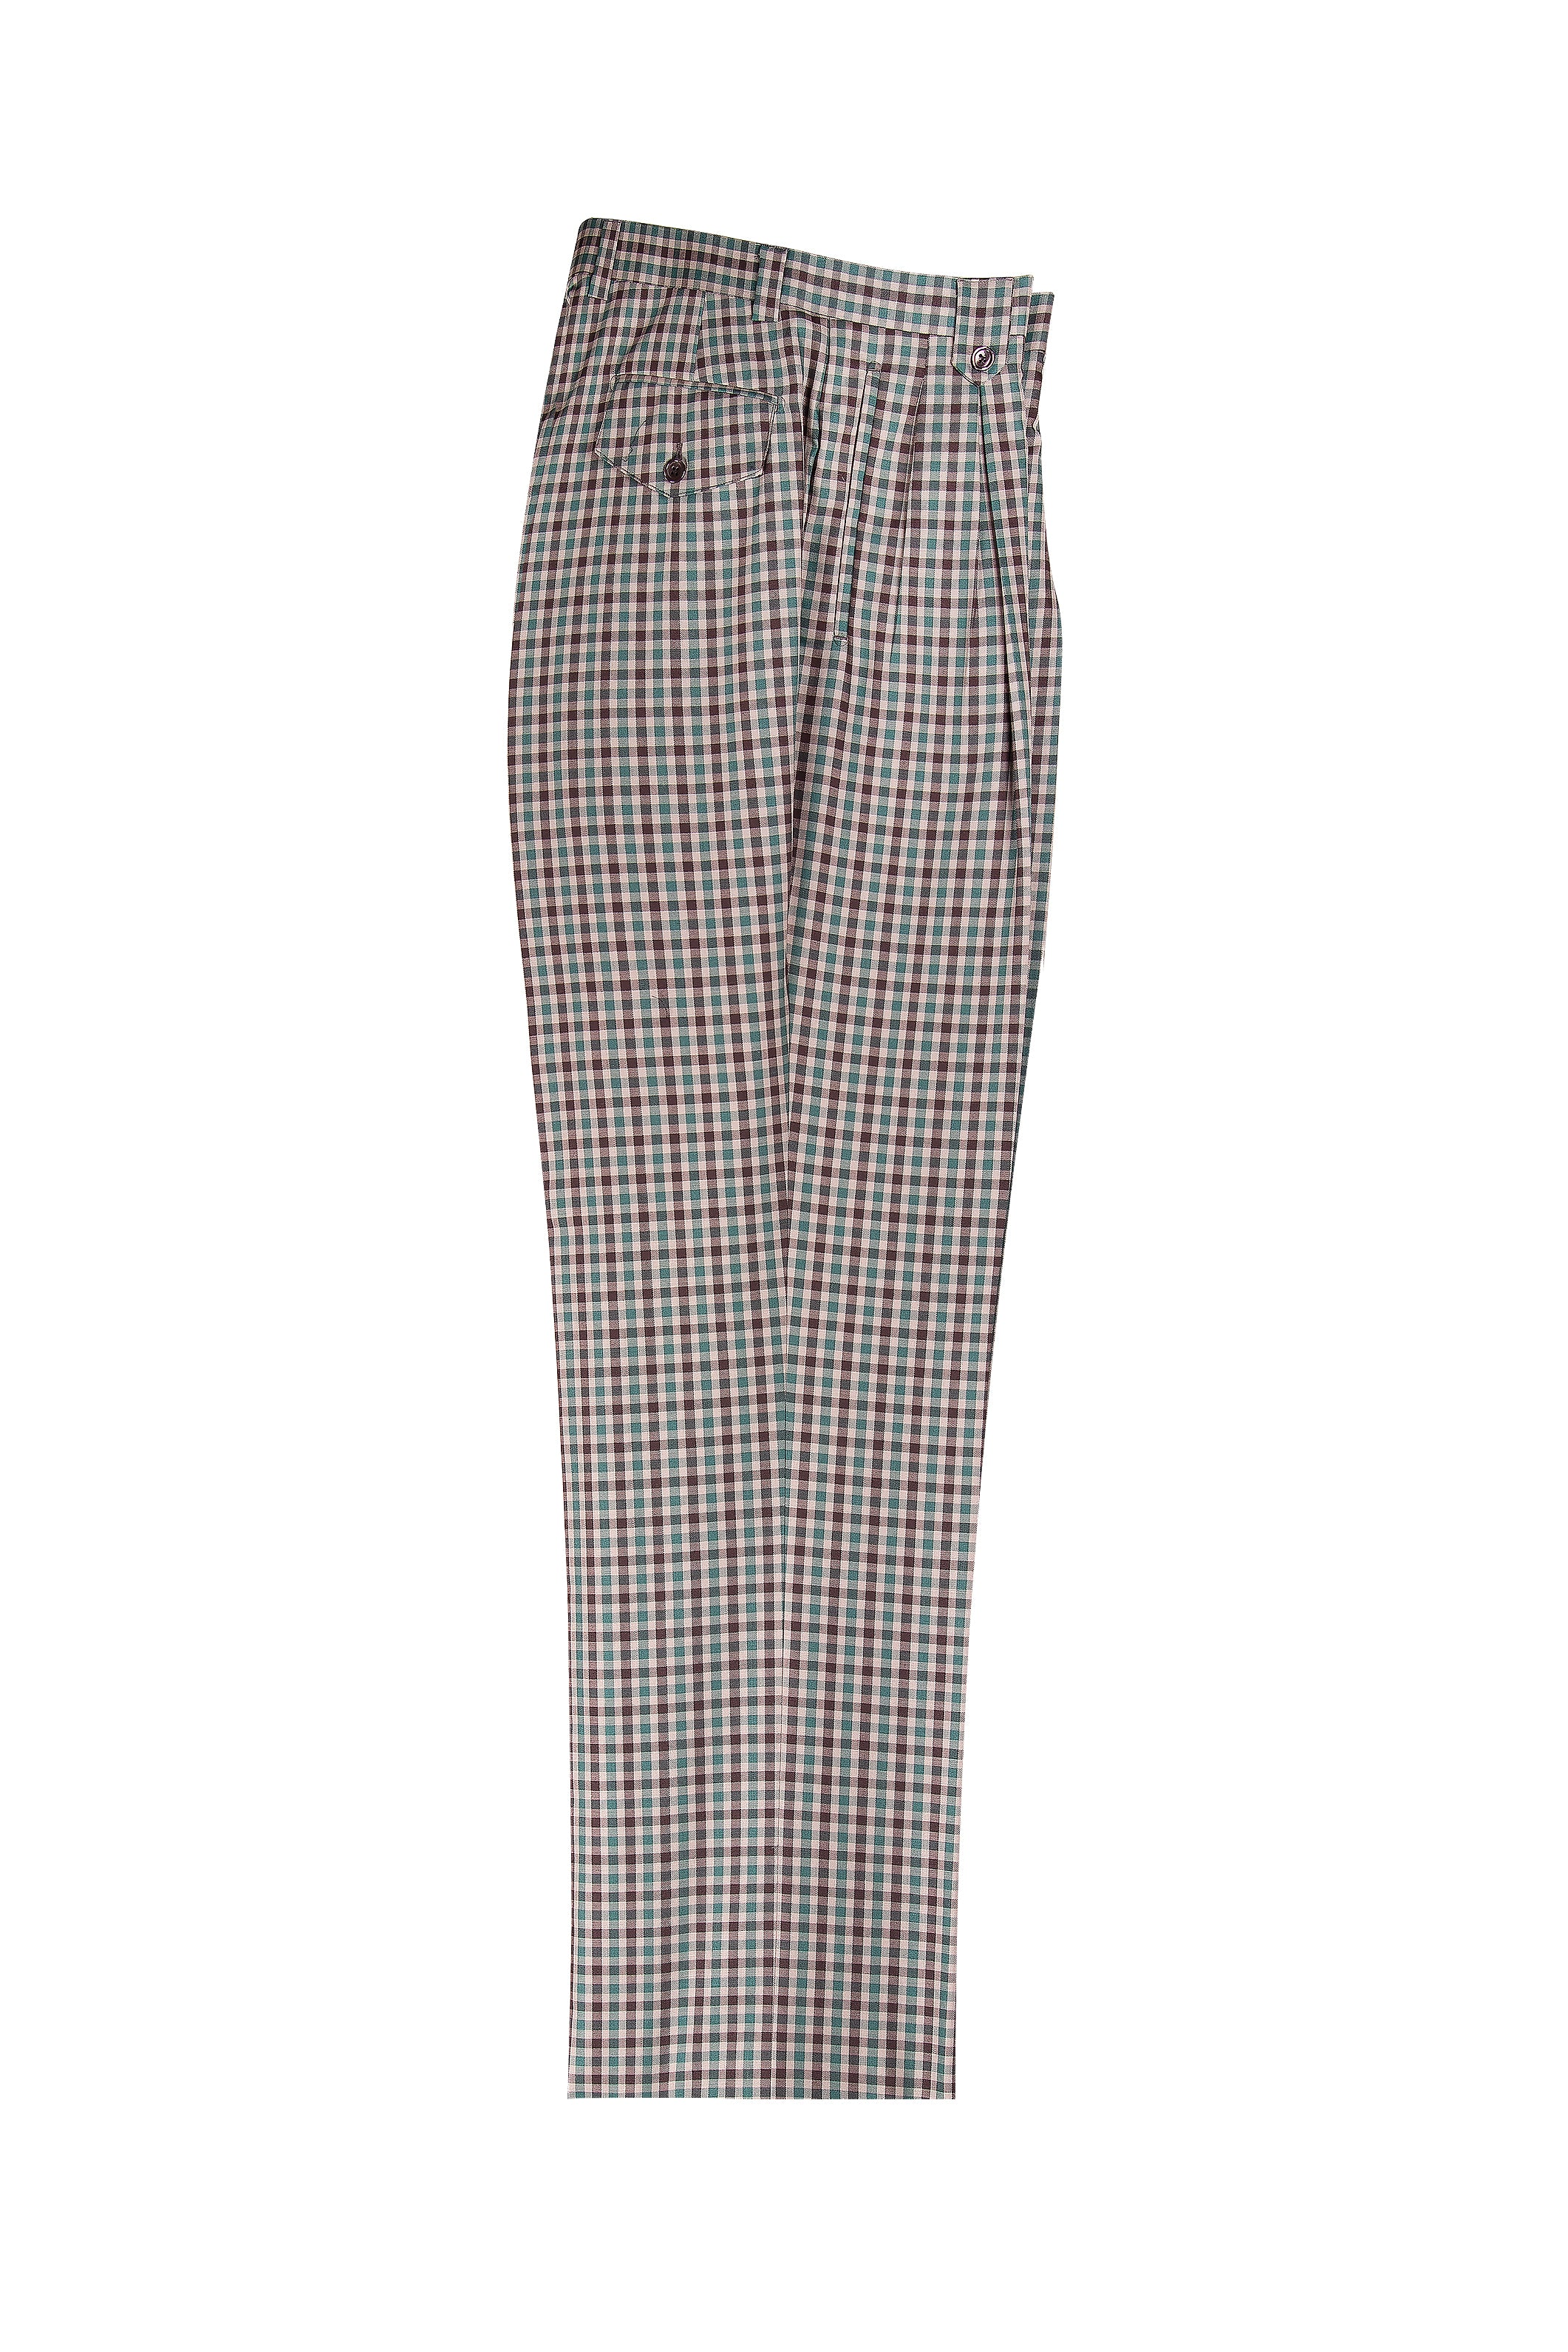 bbdd5e3749 ... Brown Check Pattern Wide Leg Wool Dress Pant 2586/2576 by. Tap to expand